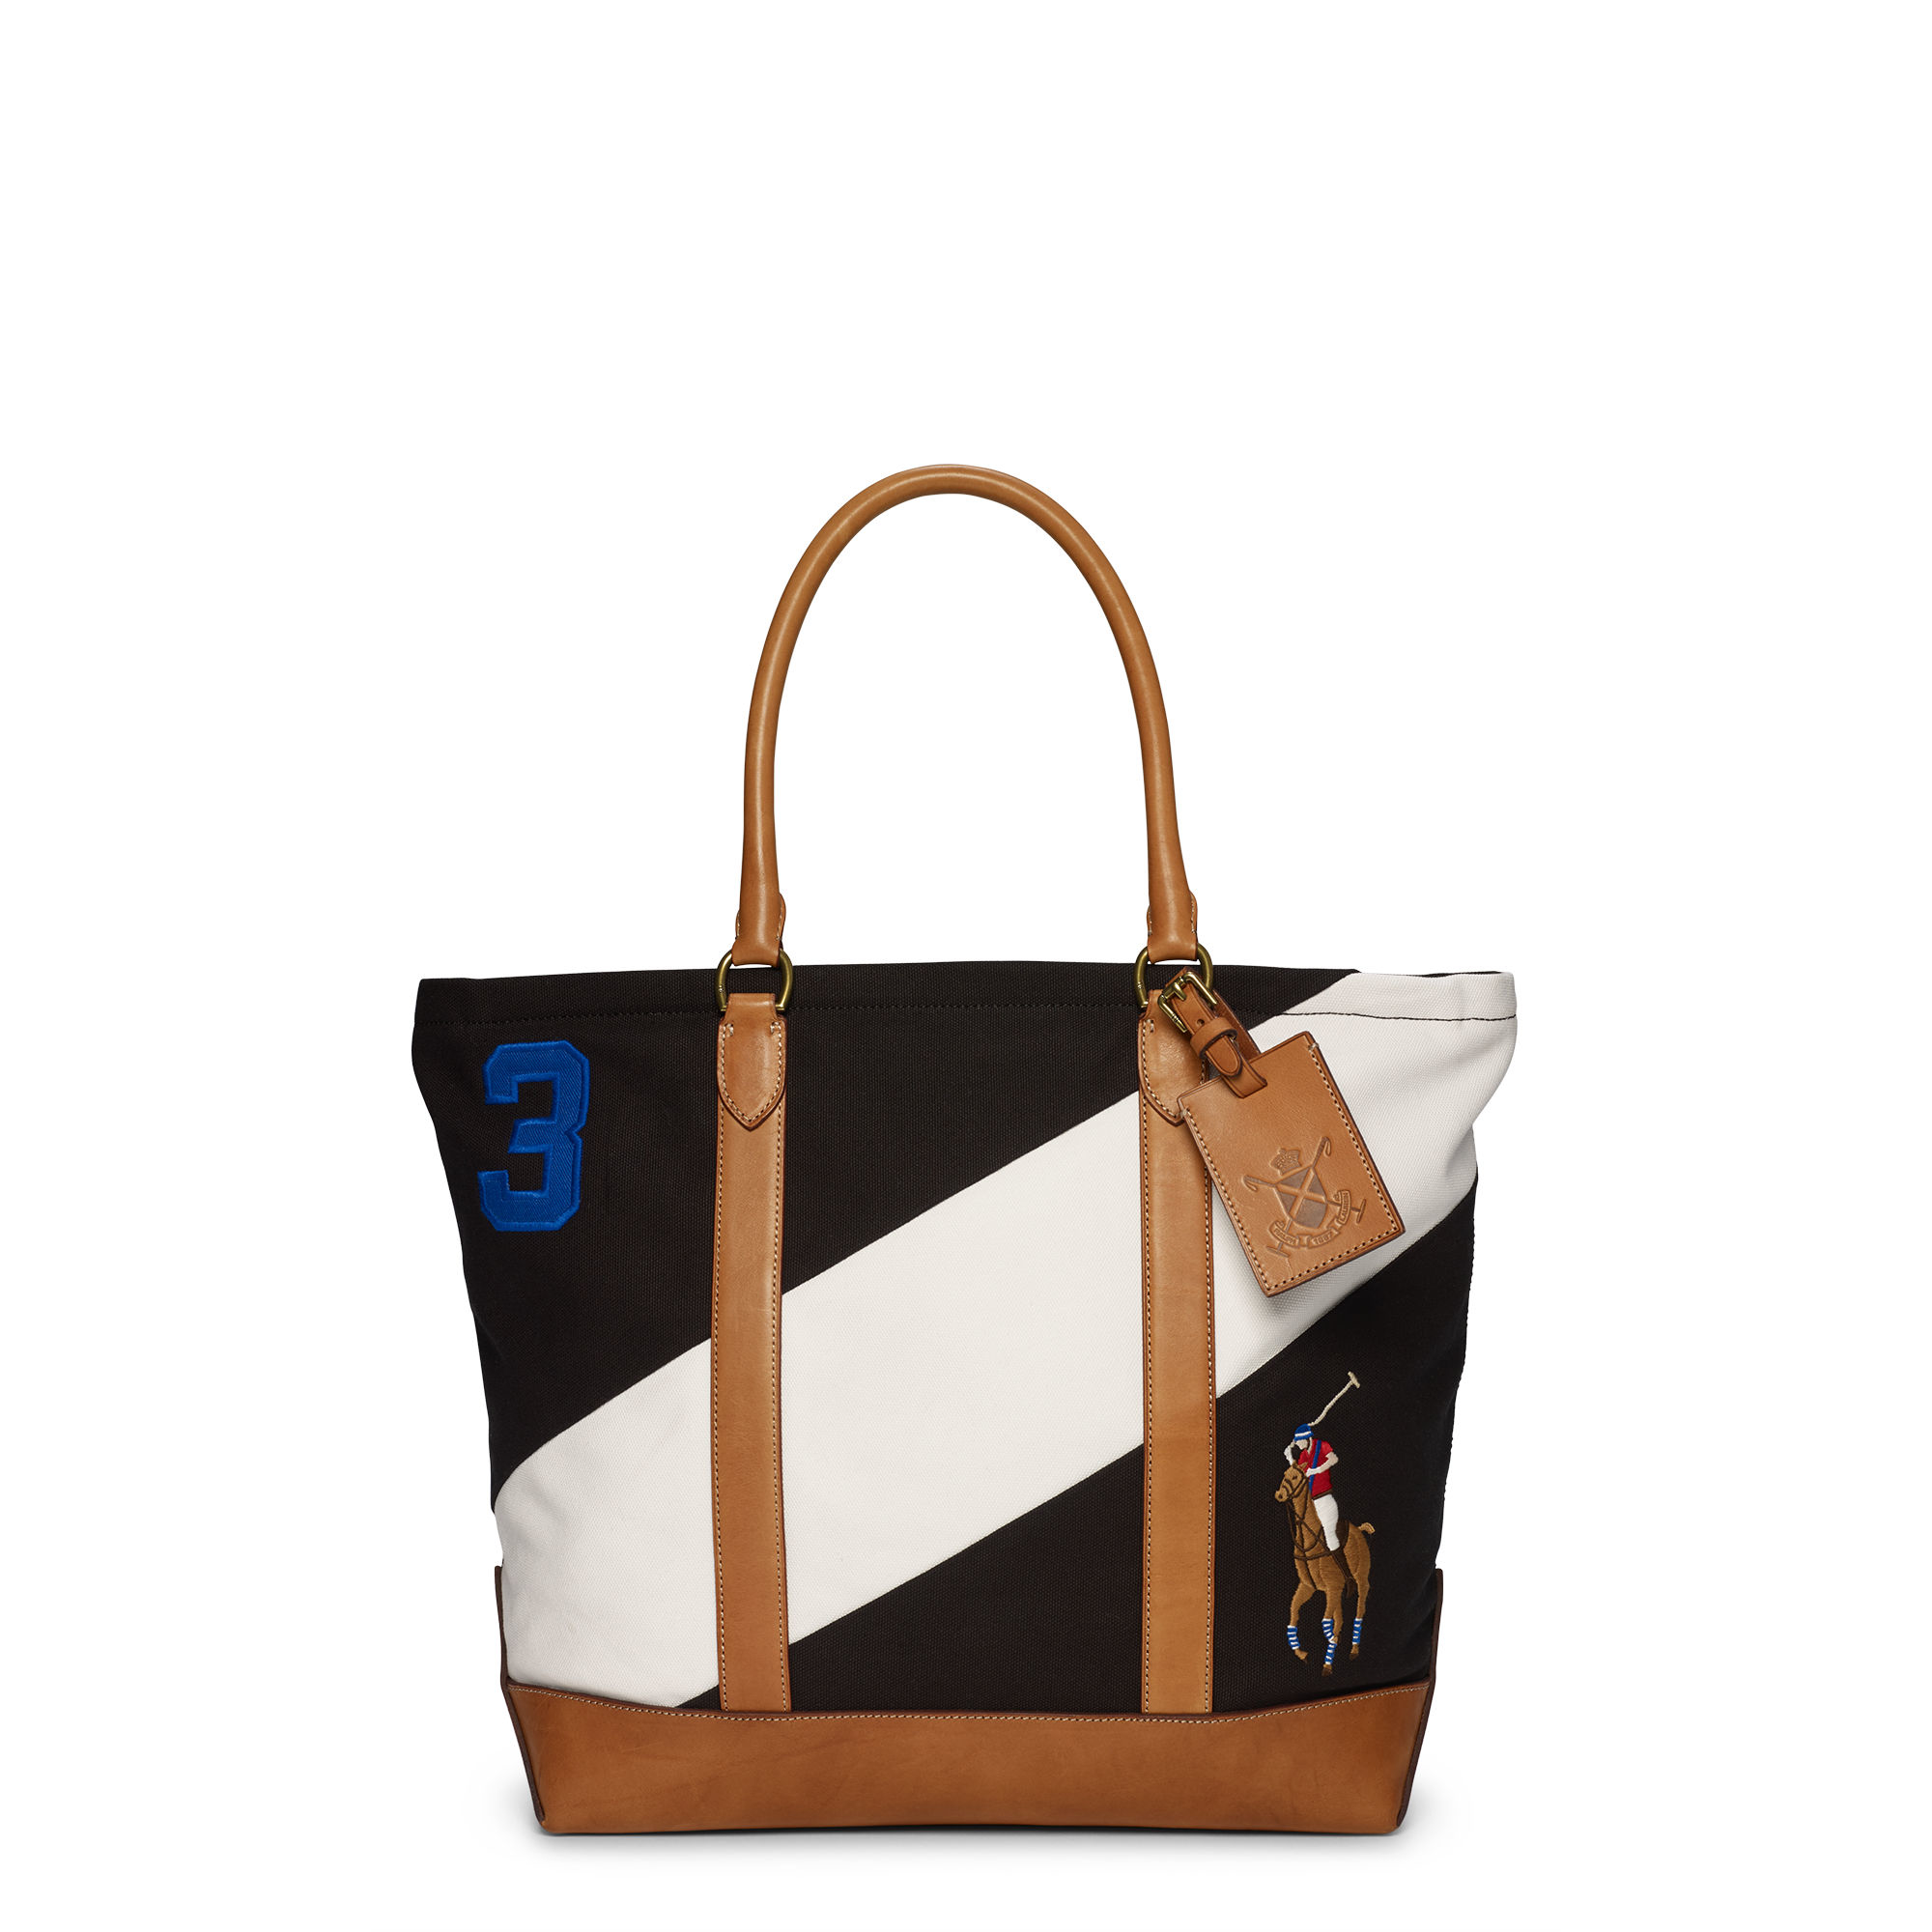 9291f03c12 Polo ralph lauren regatta stripe big pony tote in black for men lyst jpg  2000x2000 Polo